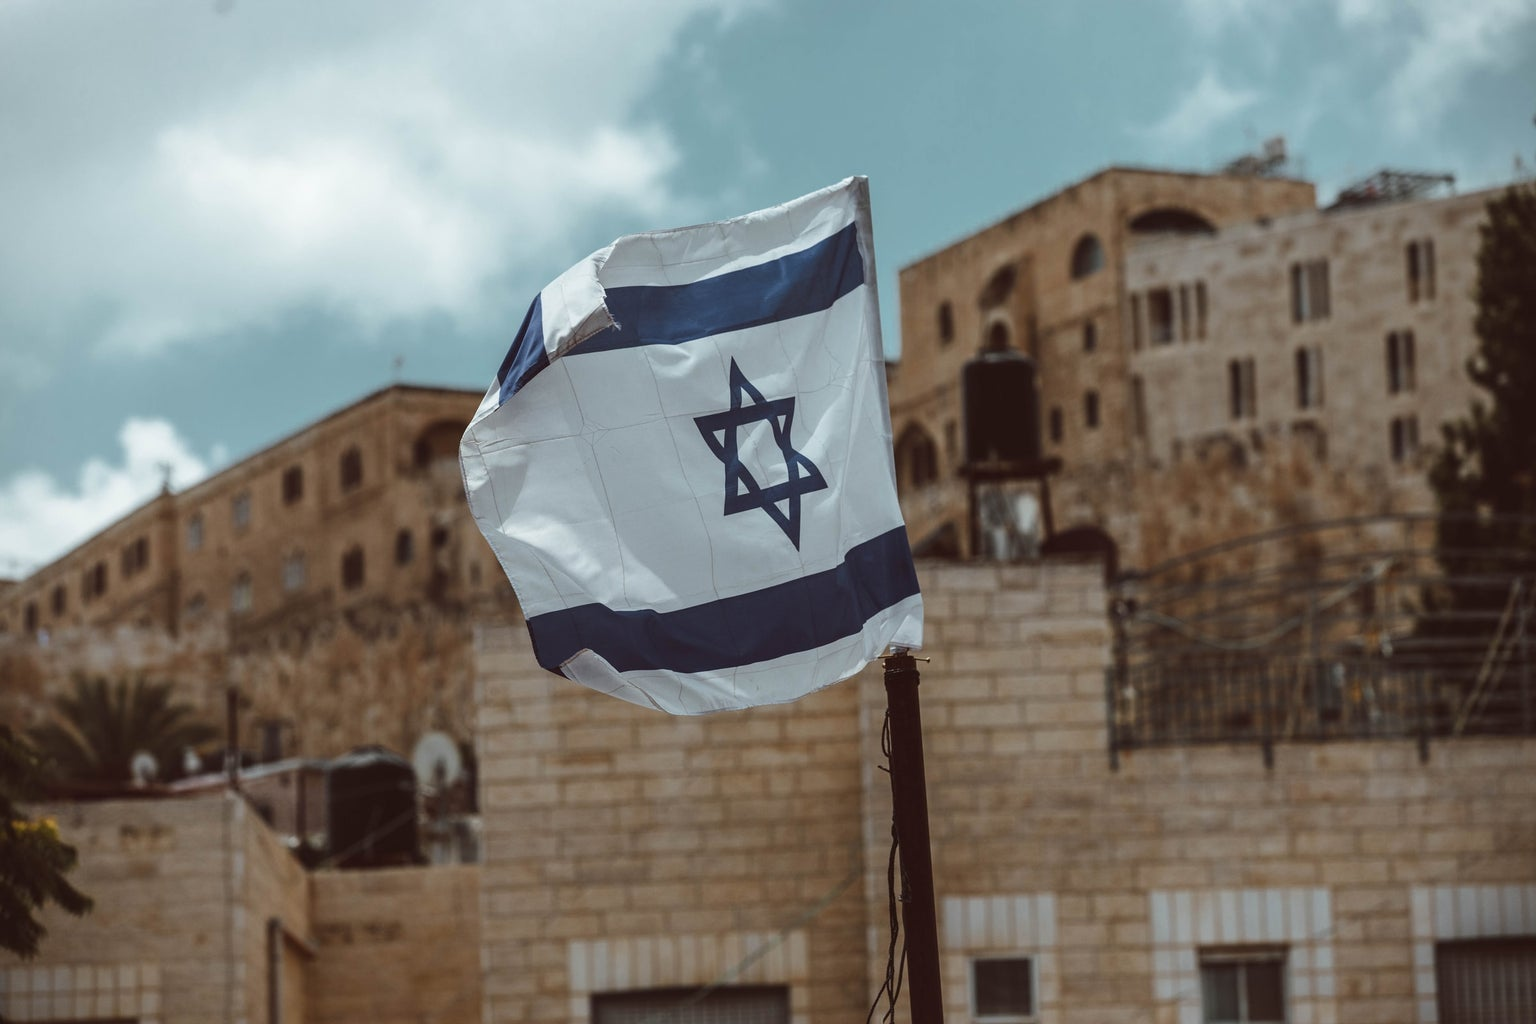 Israel blue and white flag on pole